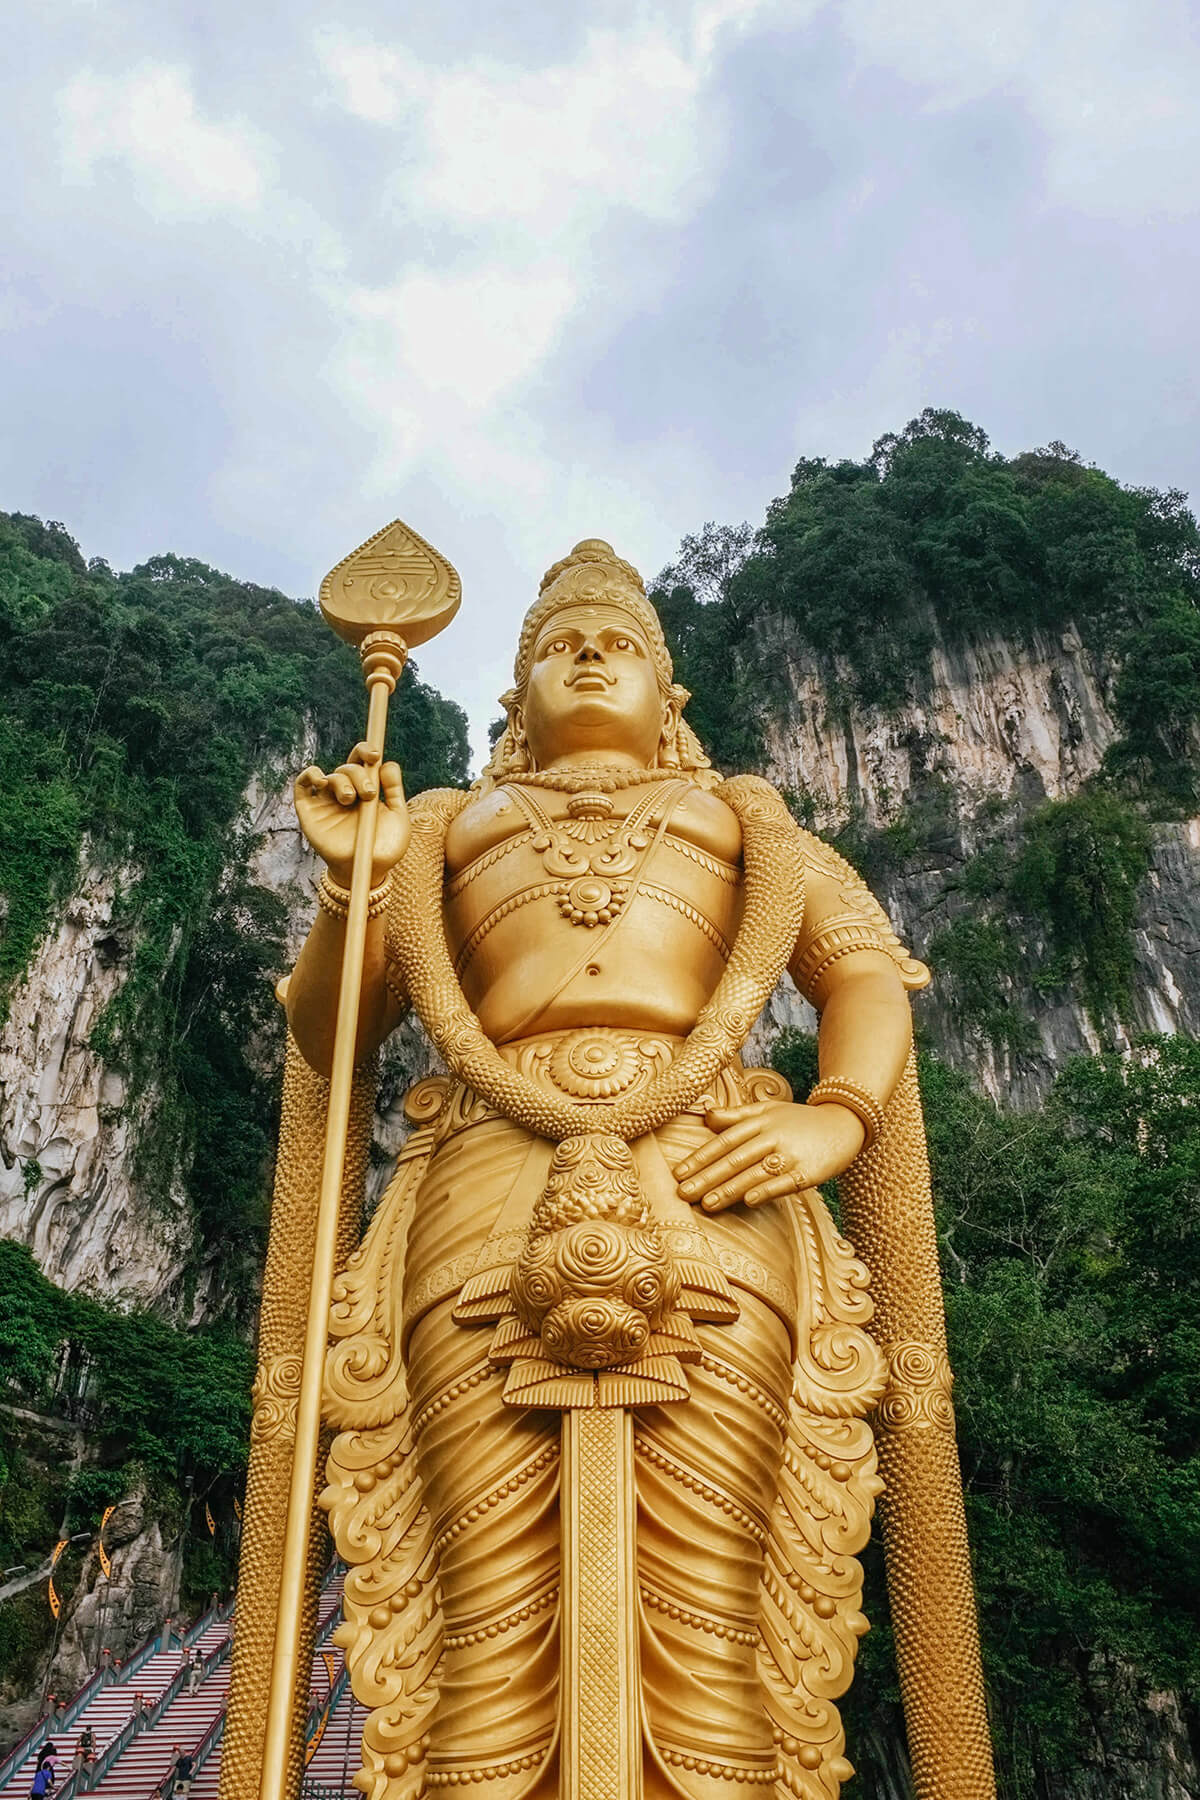 The Batu Caves are one of the obligatory things to do in Kuala Lumpur, Malaysia, for all first time visitors